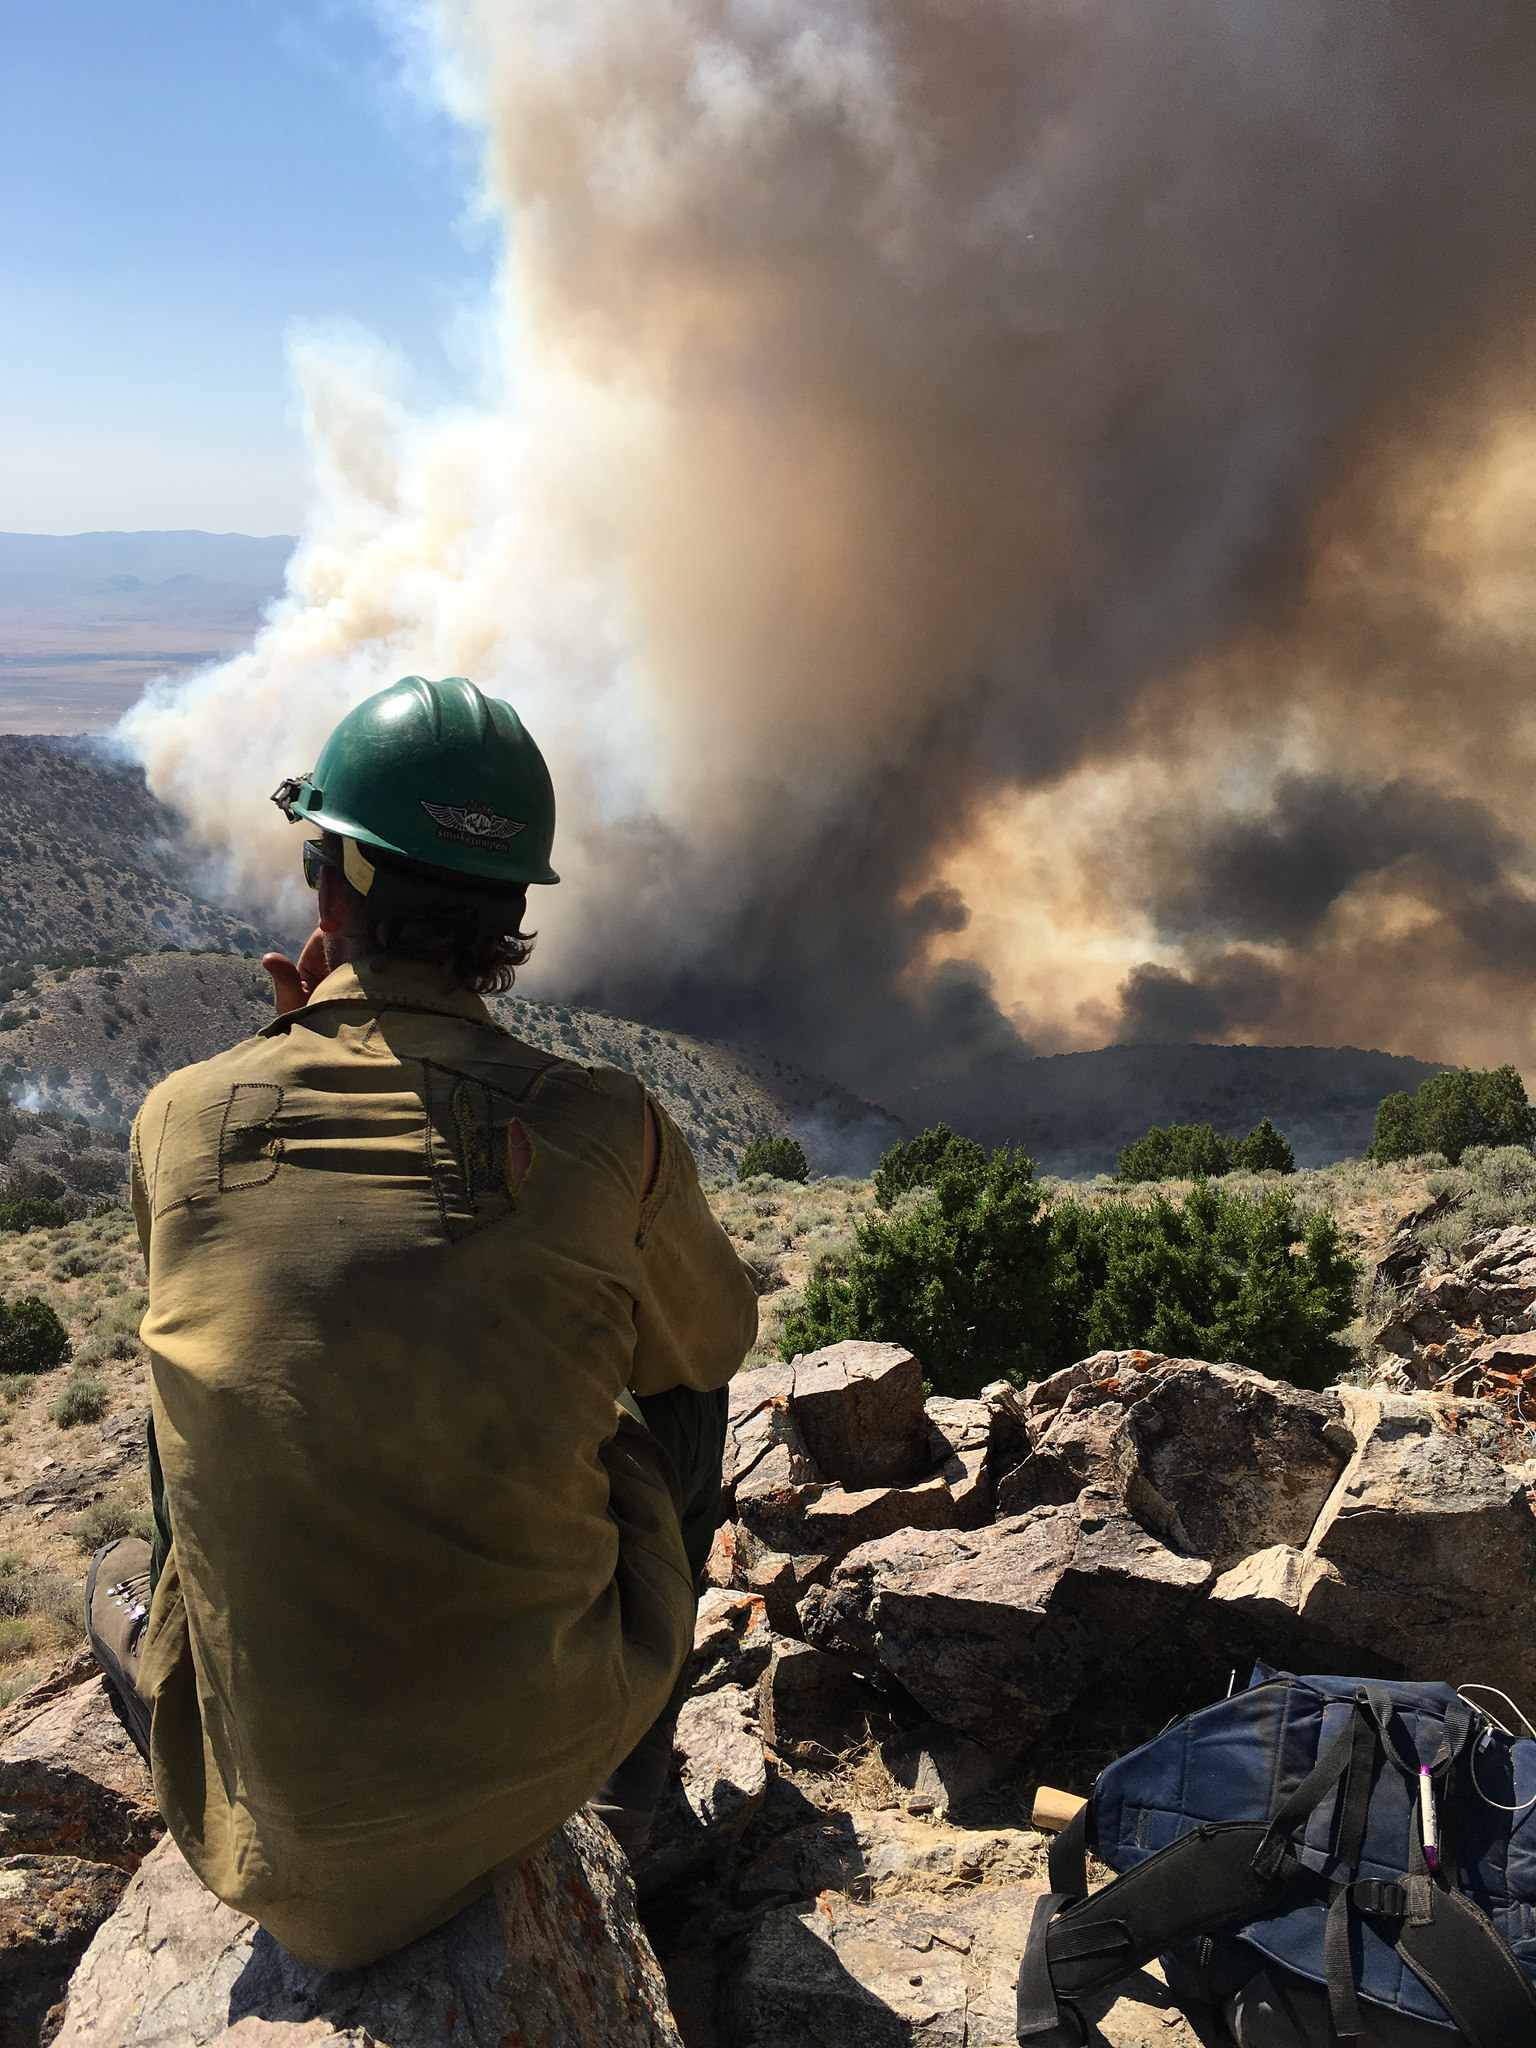 limerick-fire-that-started-july-3-2017-15-miles-northeast-of-lovelock-nevada_35653578251_o